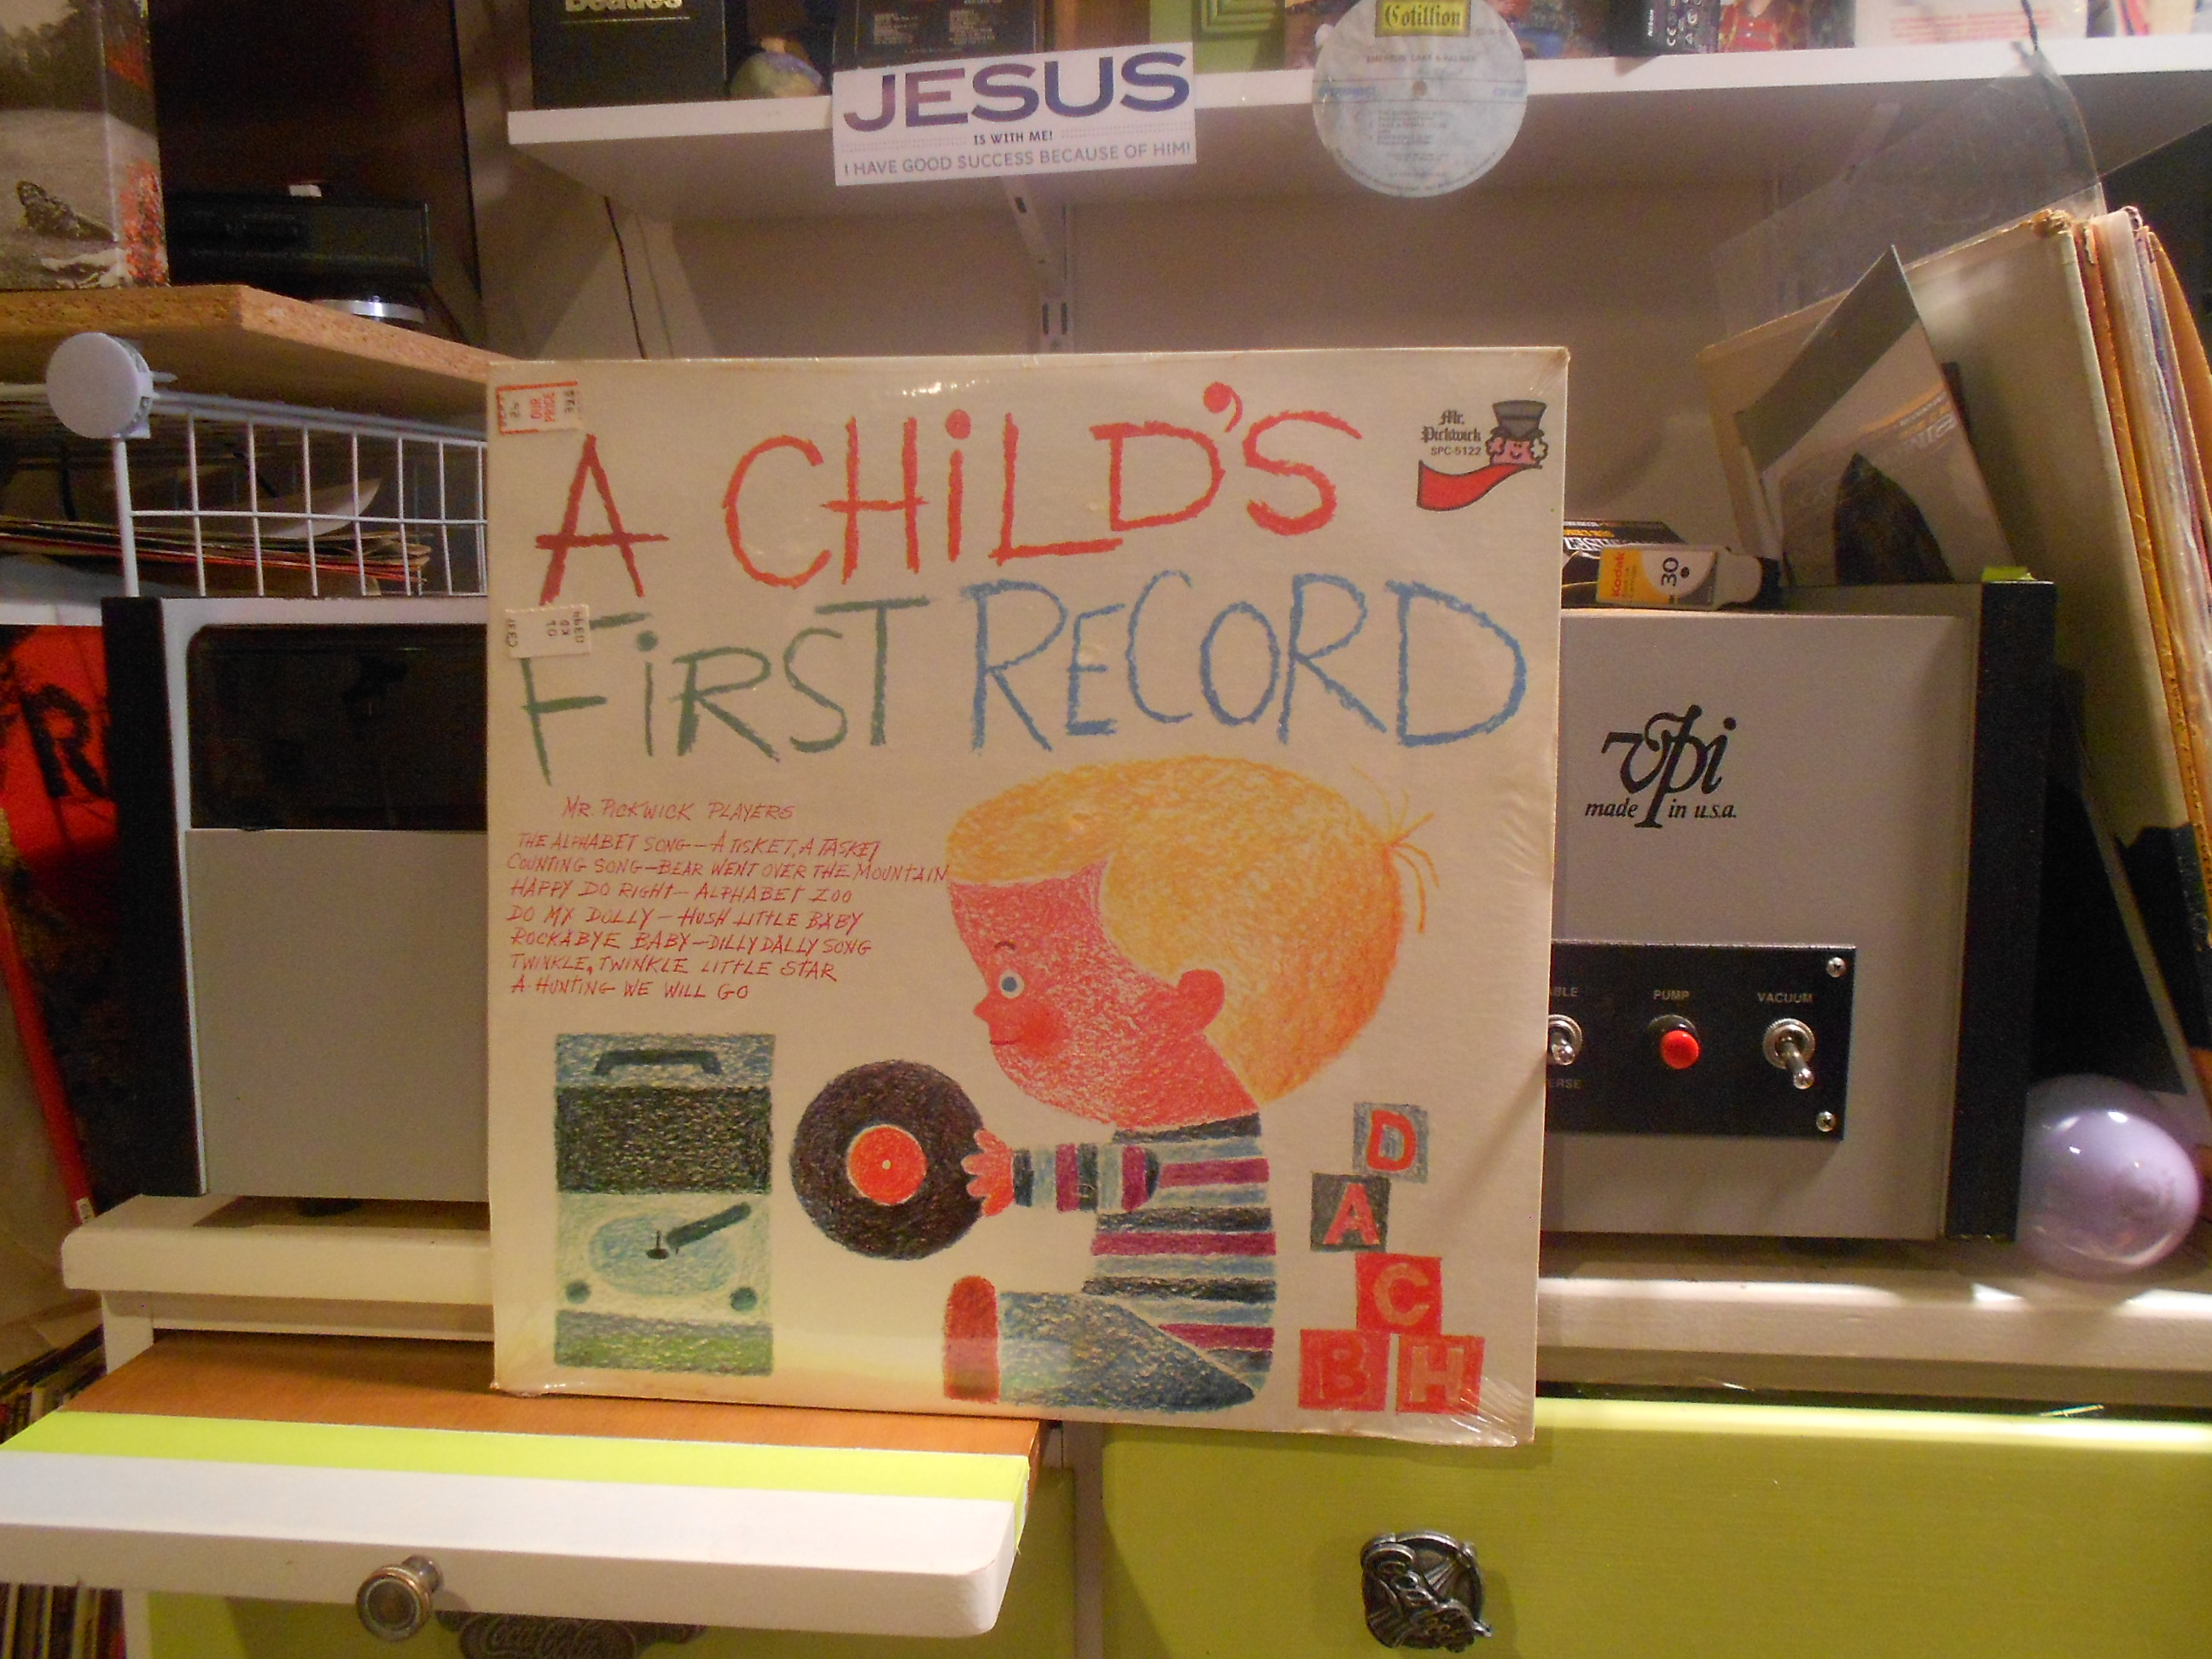 A Child's First Record